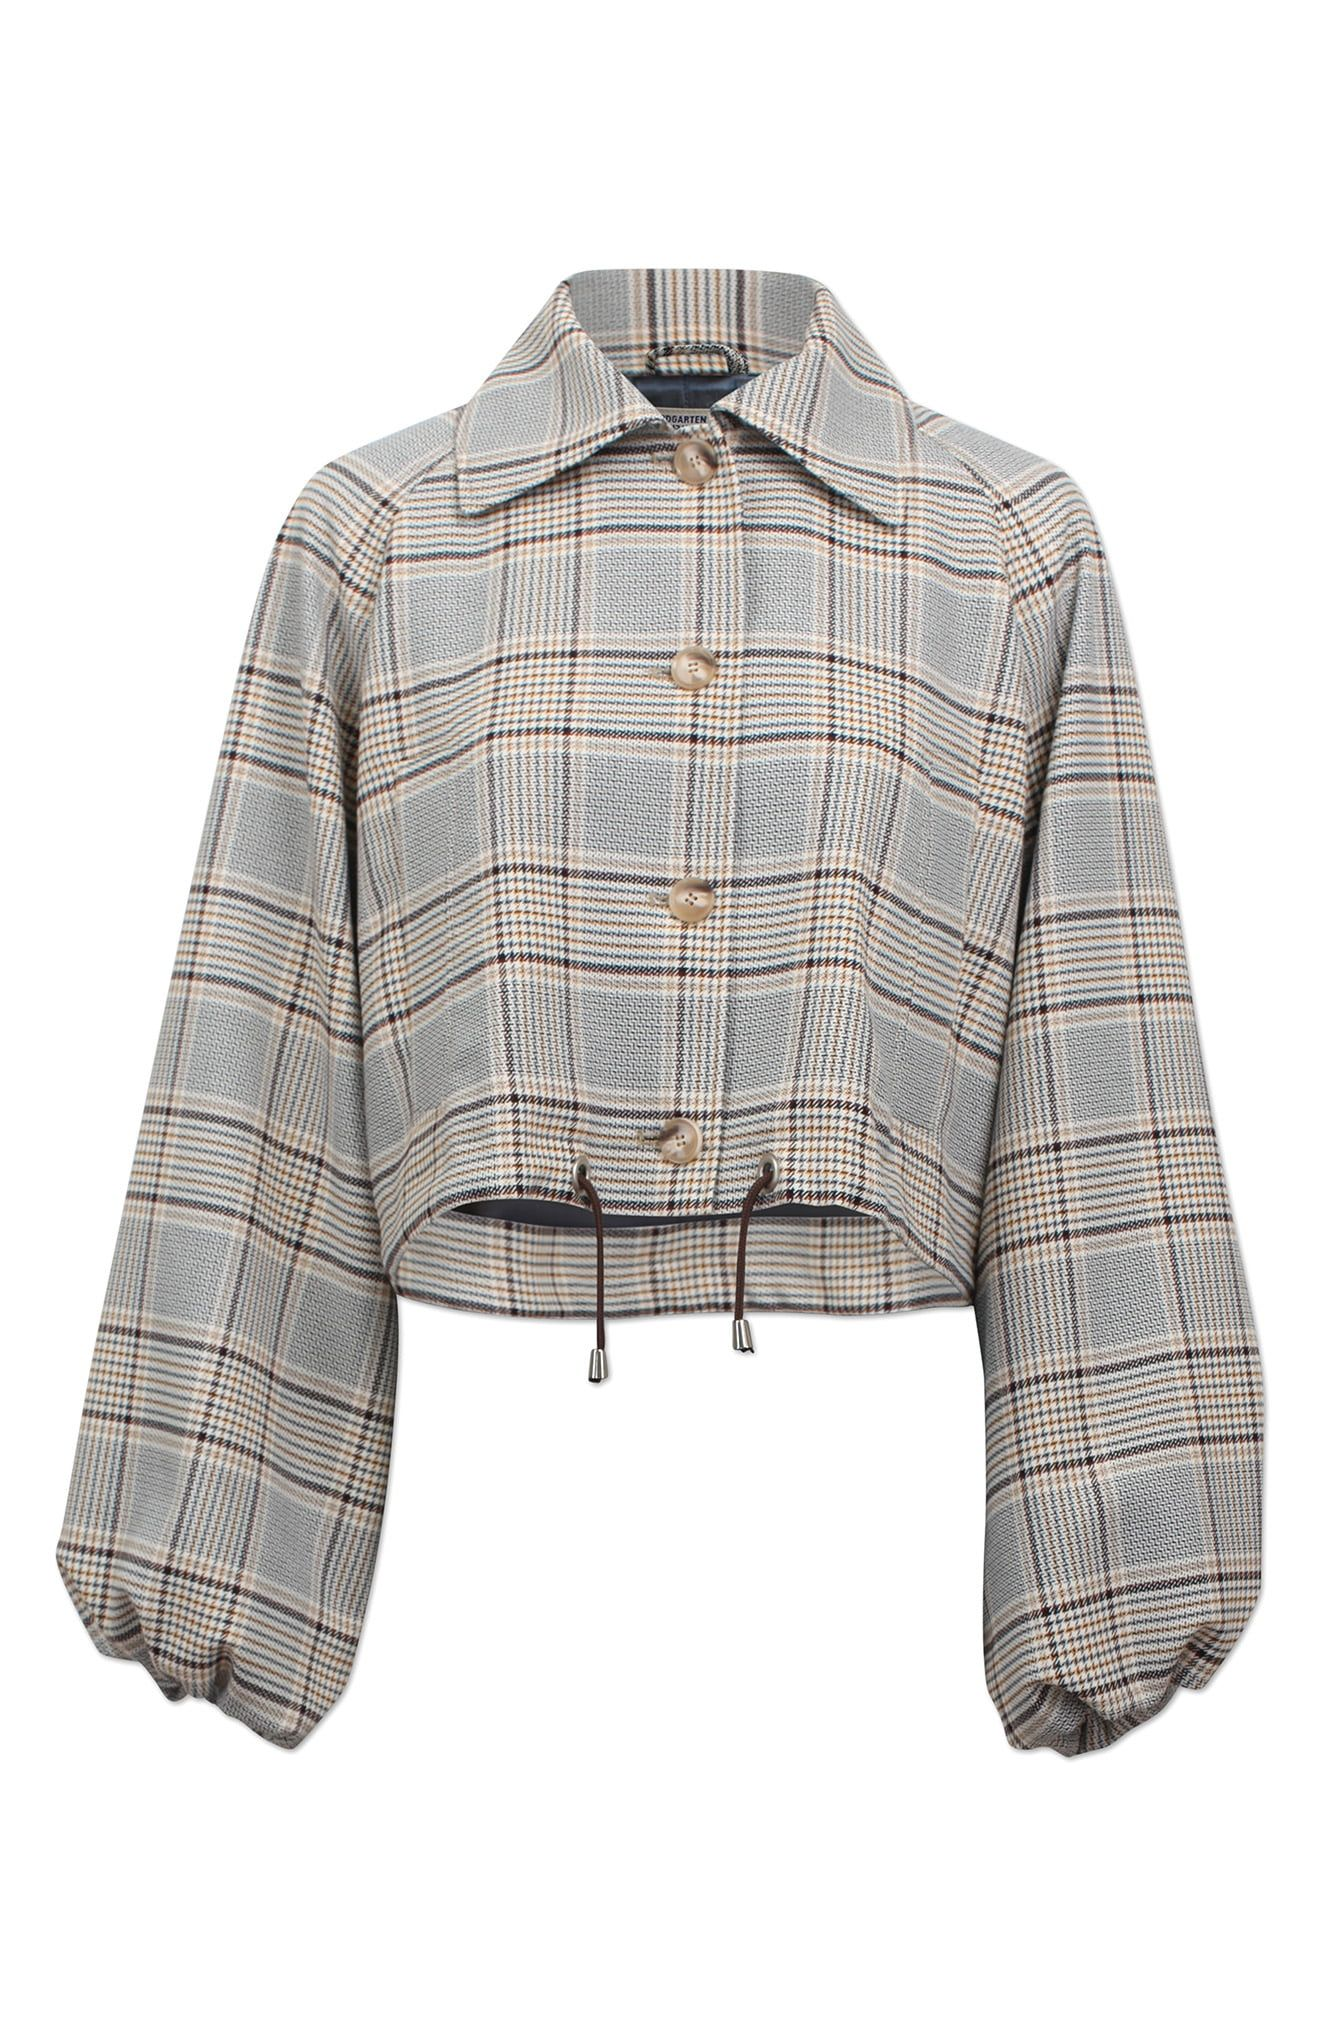 Full balloon sleeves and a cinchable hem bring soft volume to this cropped jacket in a neutral plaid pattern. Style Name:Baum Und Pferdgarten Blair Plaid Crop Jacket. Style Number: 6073311. Available in stores.